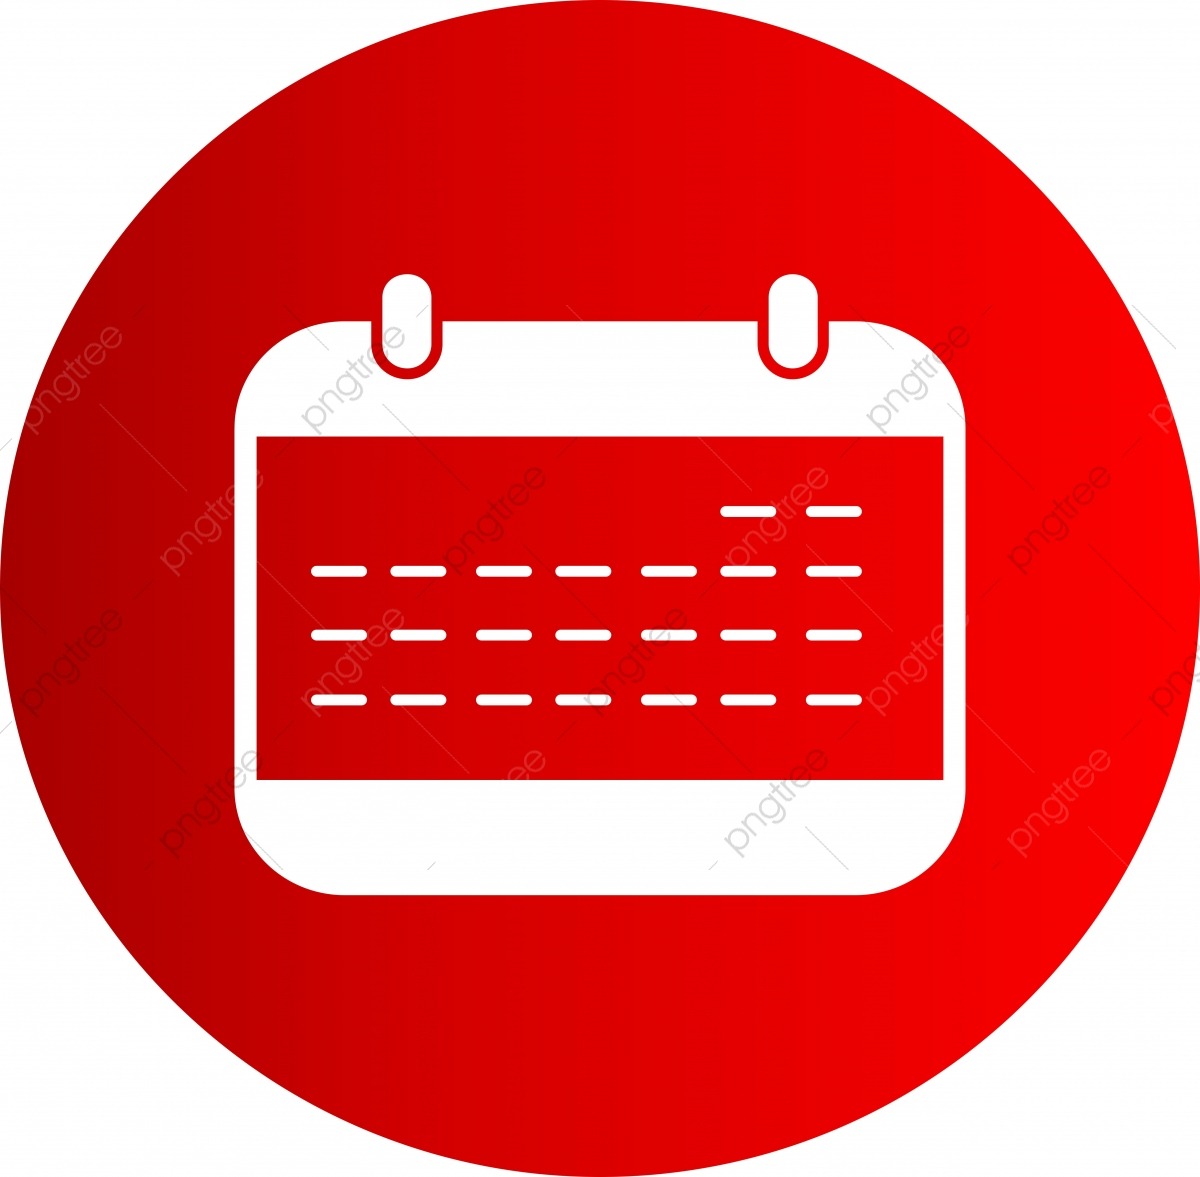 Vector Calendar Icon, Calendar Icon, Month, Day Png And inside Red Calendar Icon Png